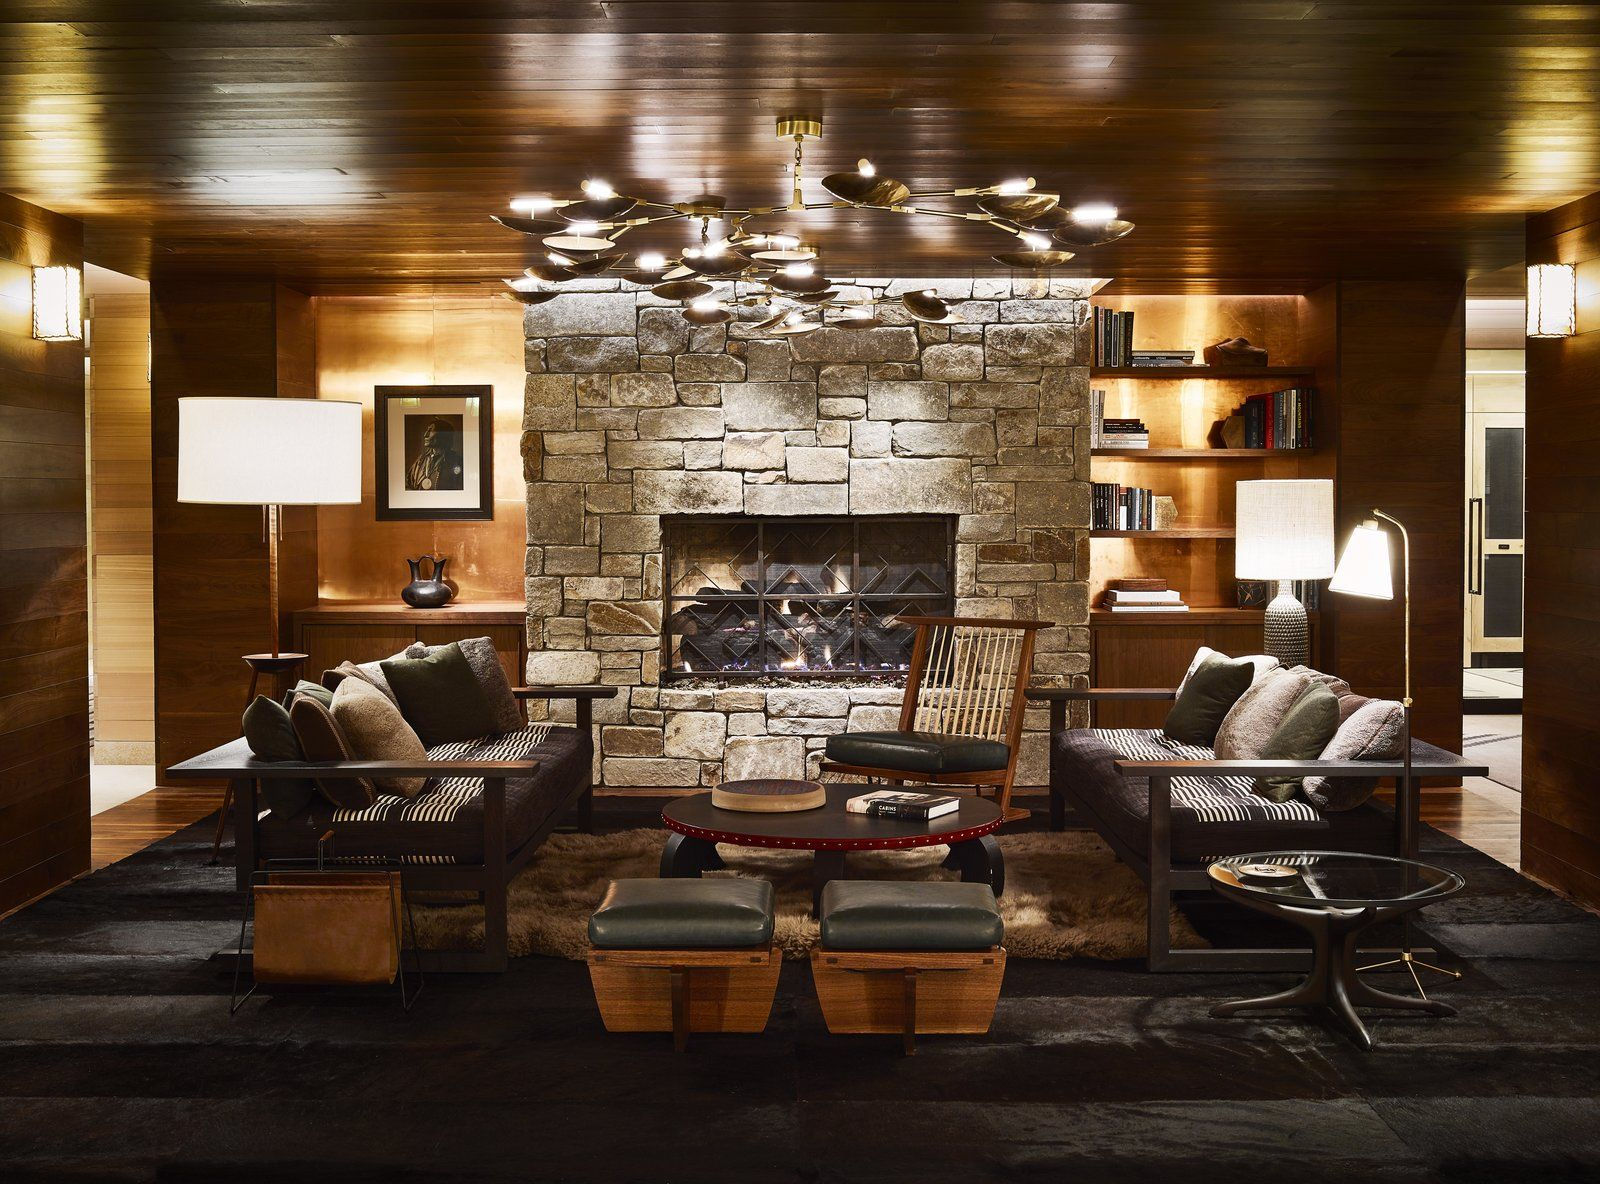 Photo 2 Of 17 In Experience The Grand Tetons In Style With This House Luxury Amenities Ski Hotel